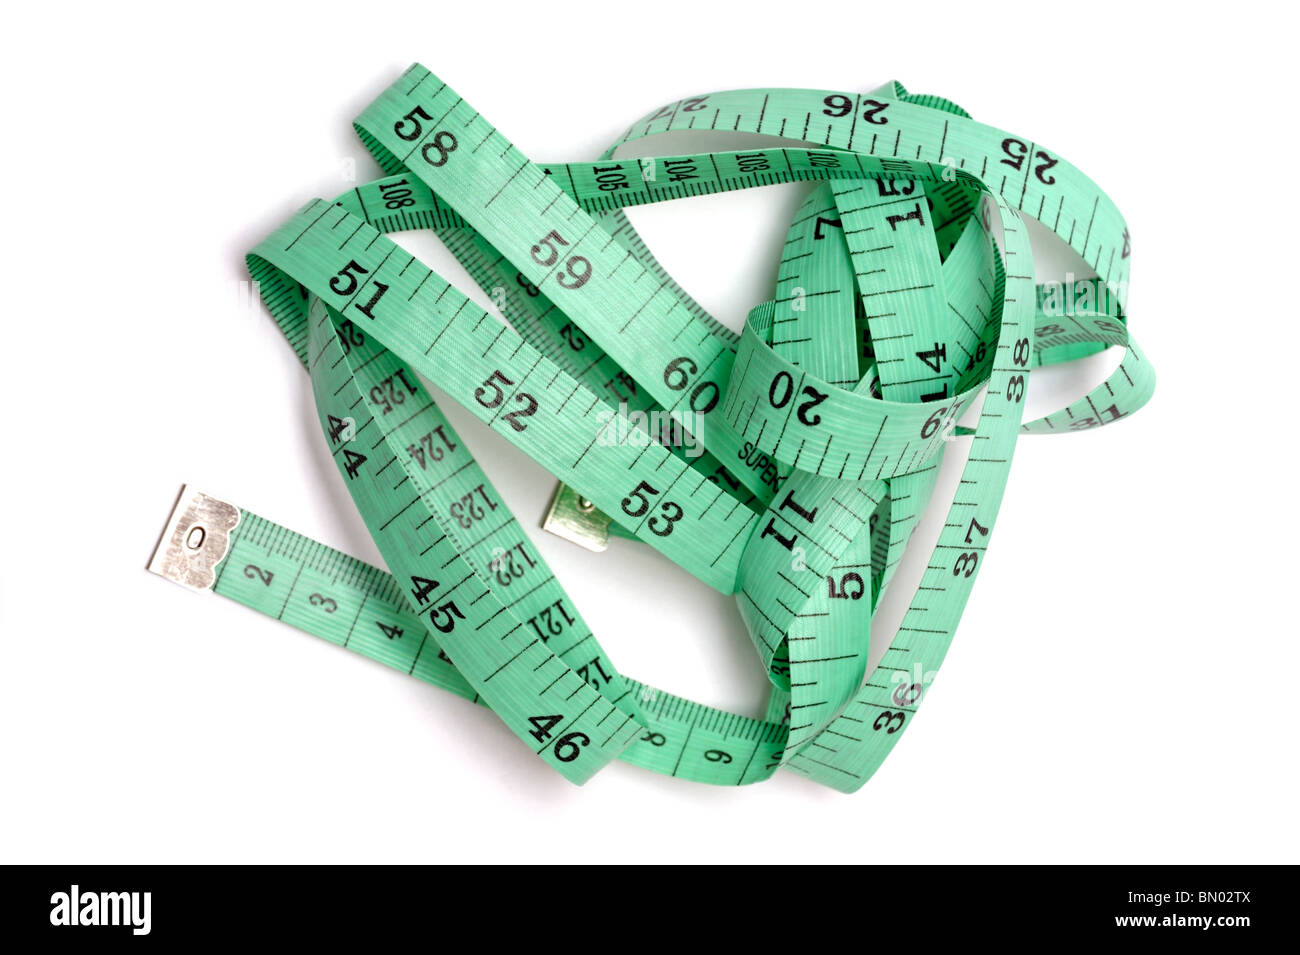 Green tape measure - Stock Image